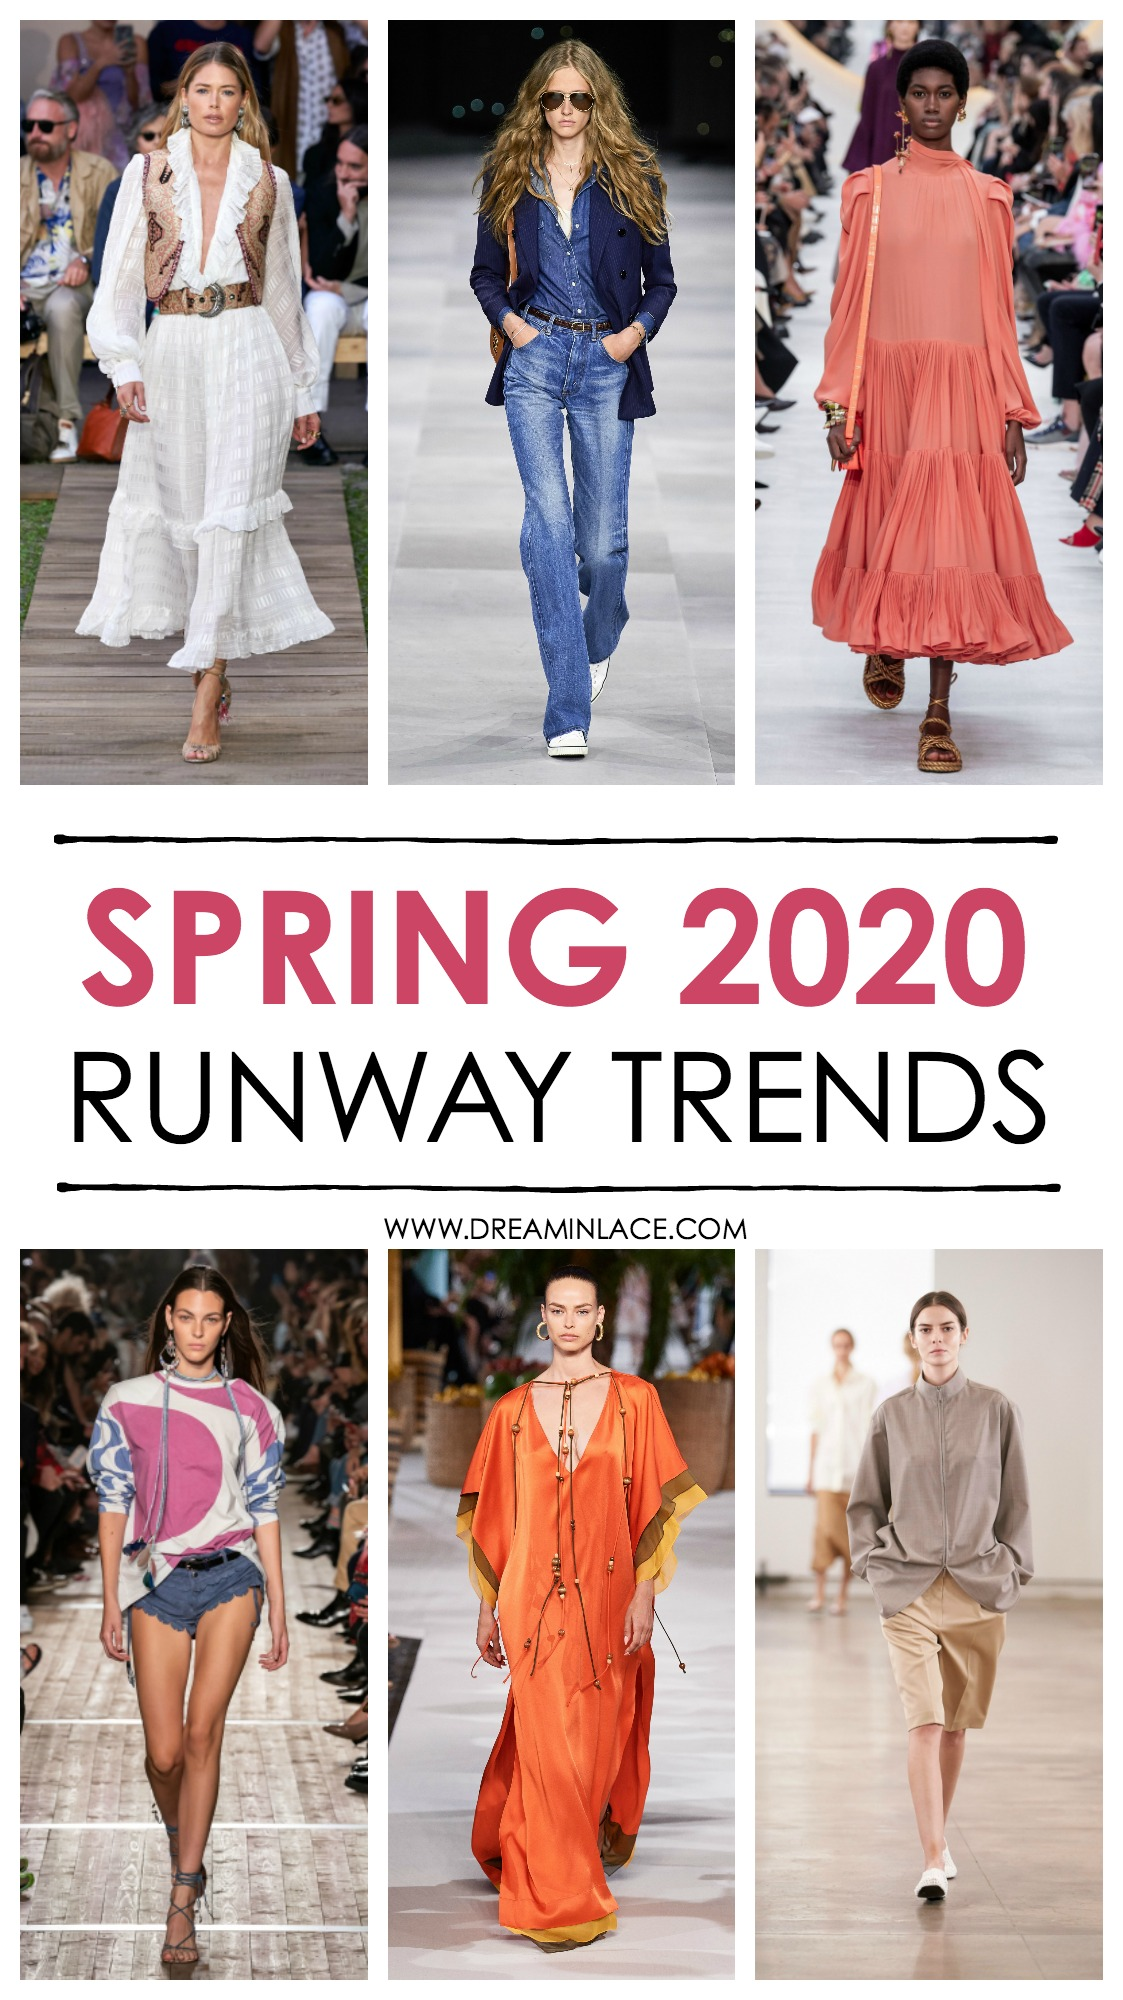 Spring 2020 Trends Straight Off the Runway I DreaminLace.com